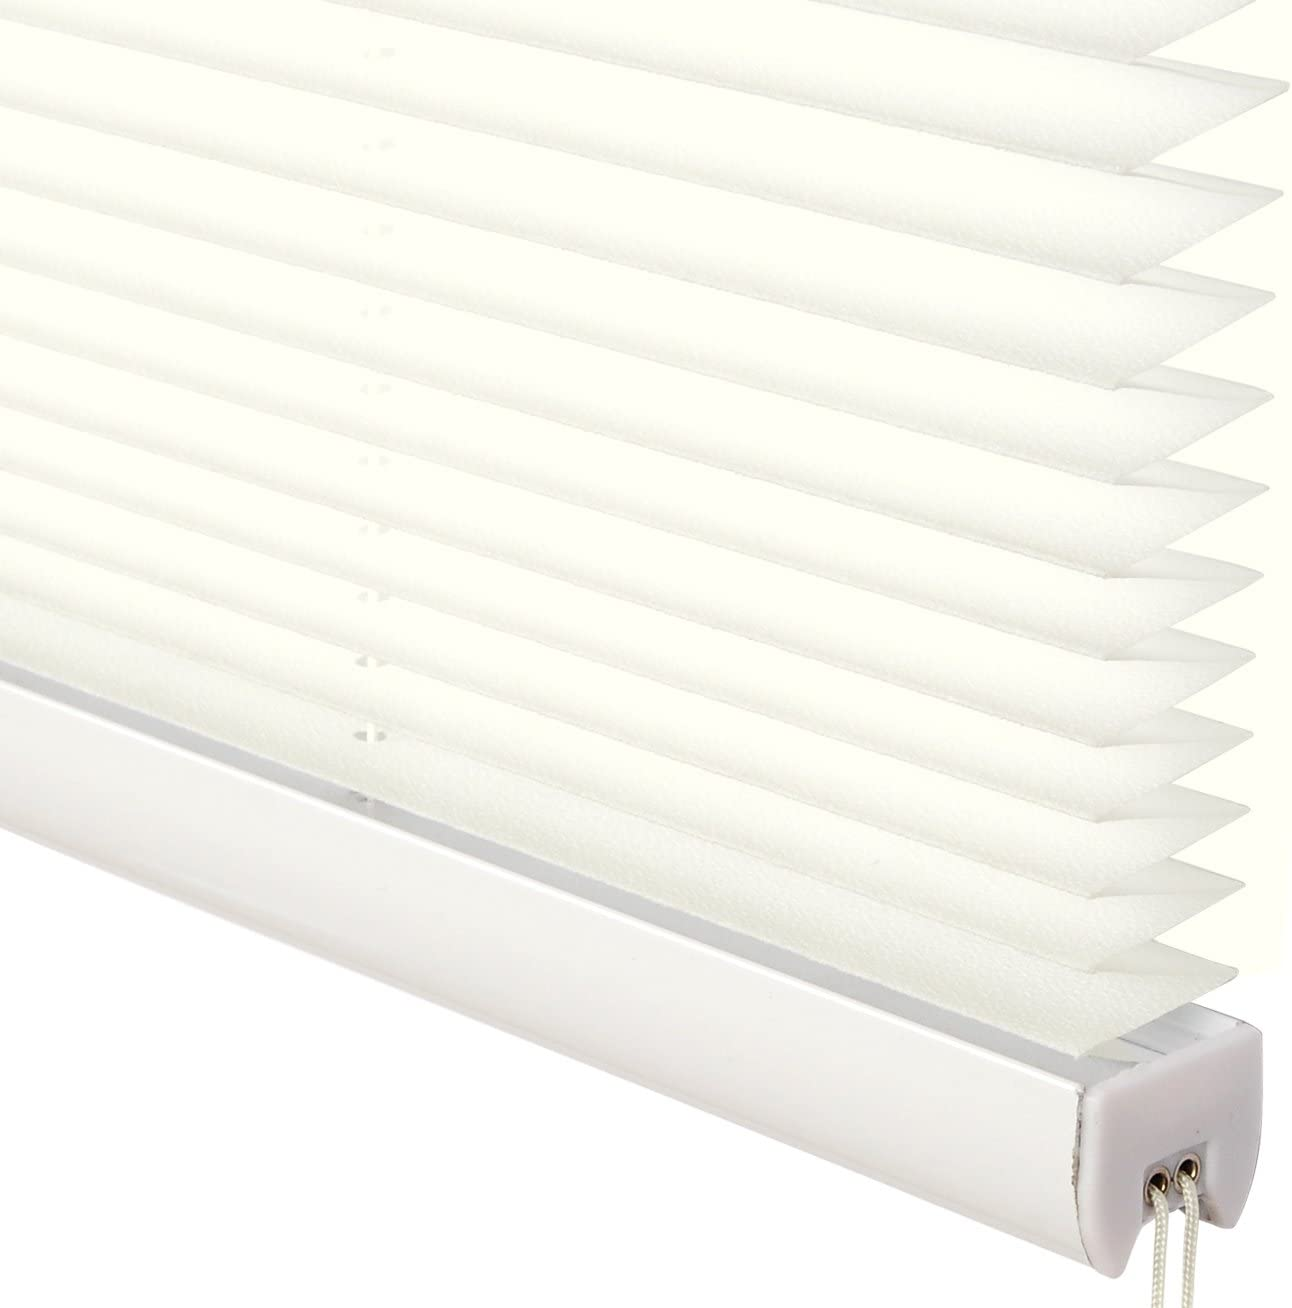 WOLTU Pleated Blinds Polyester No Drilling Easy Fix Pleated Shades Instant Temporary Privacy Blinds for Window or Door Frosted Glass Pattern 50x100cm White